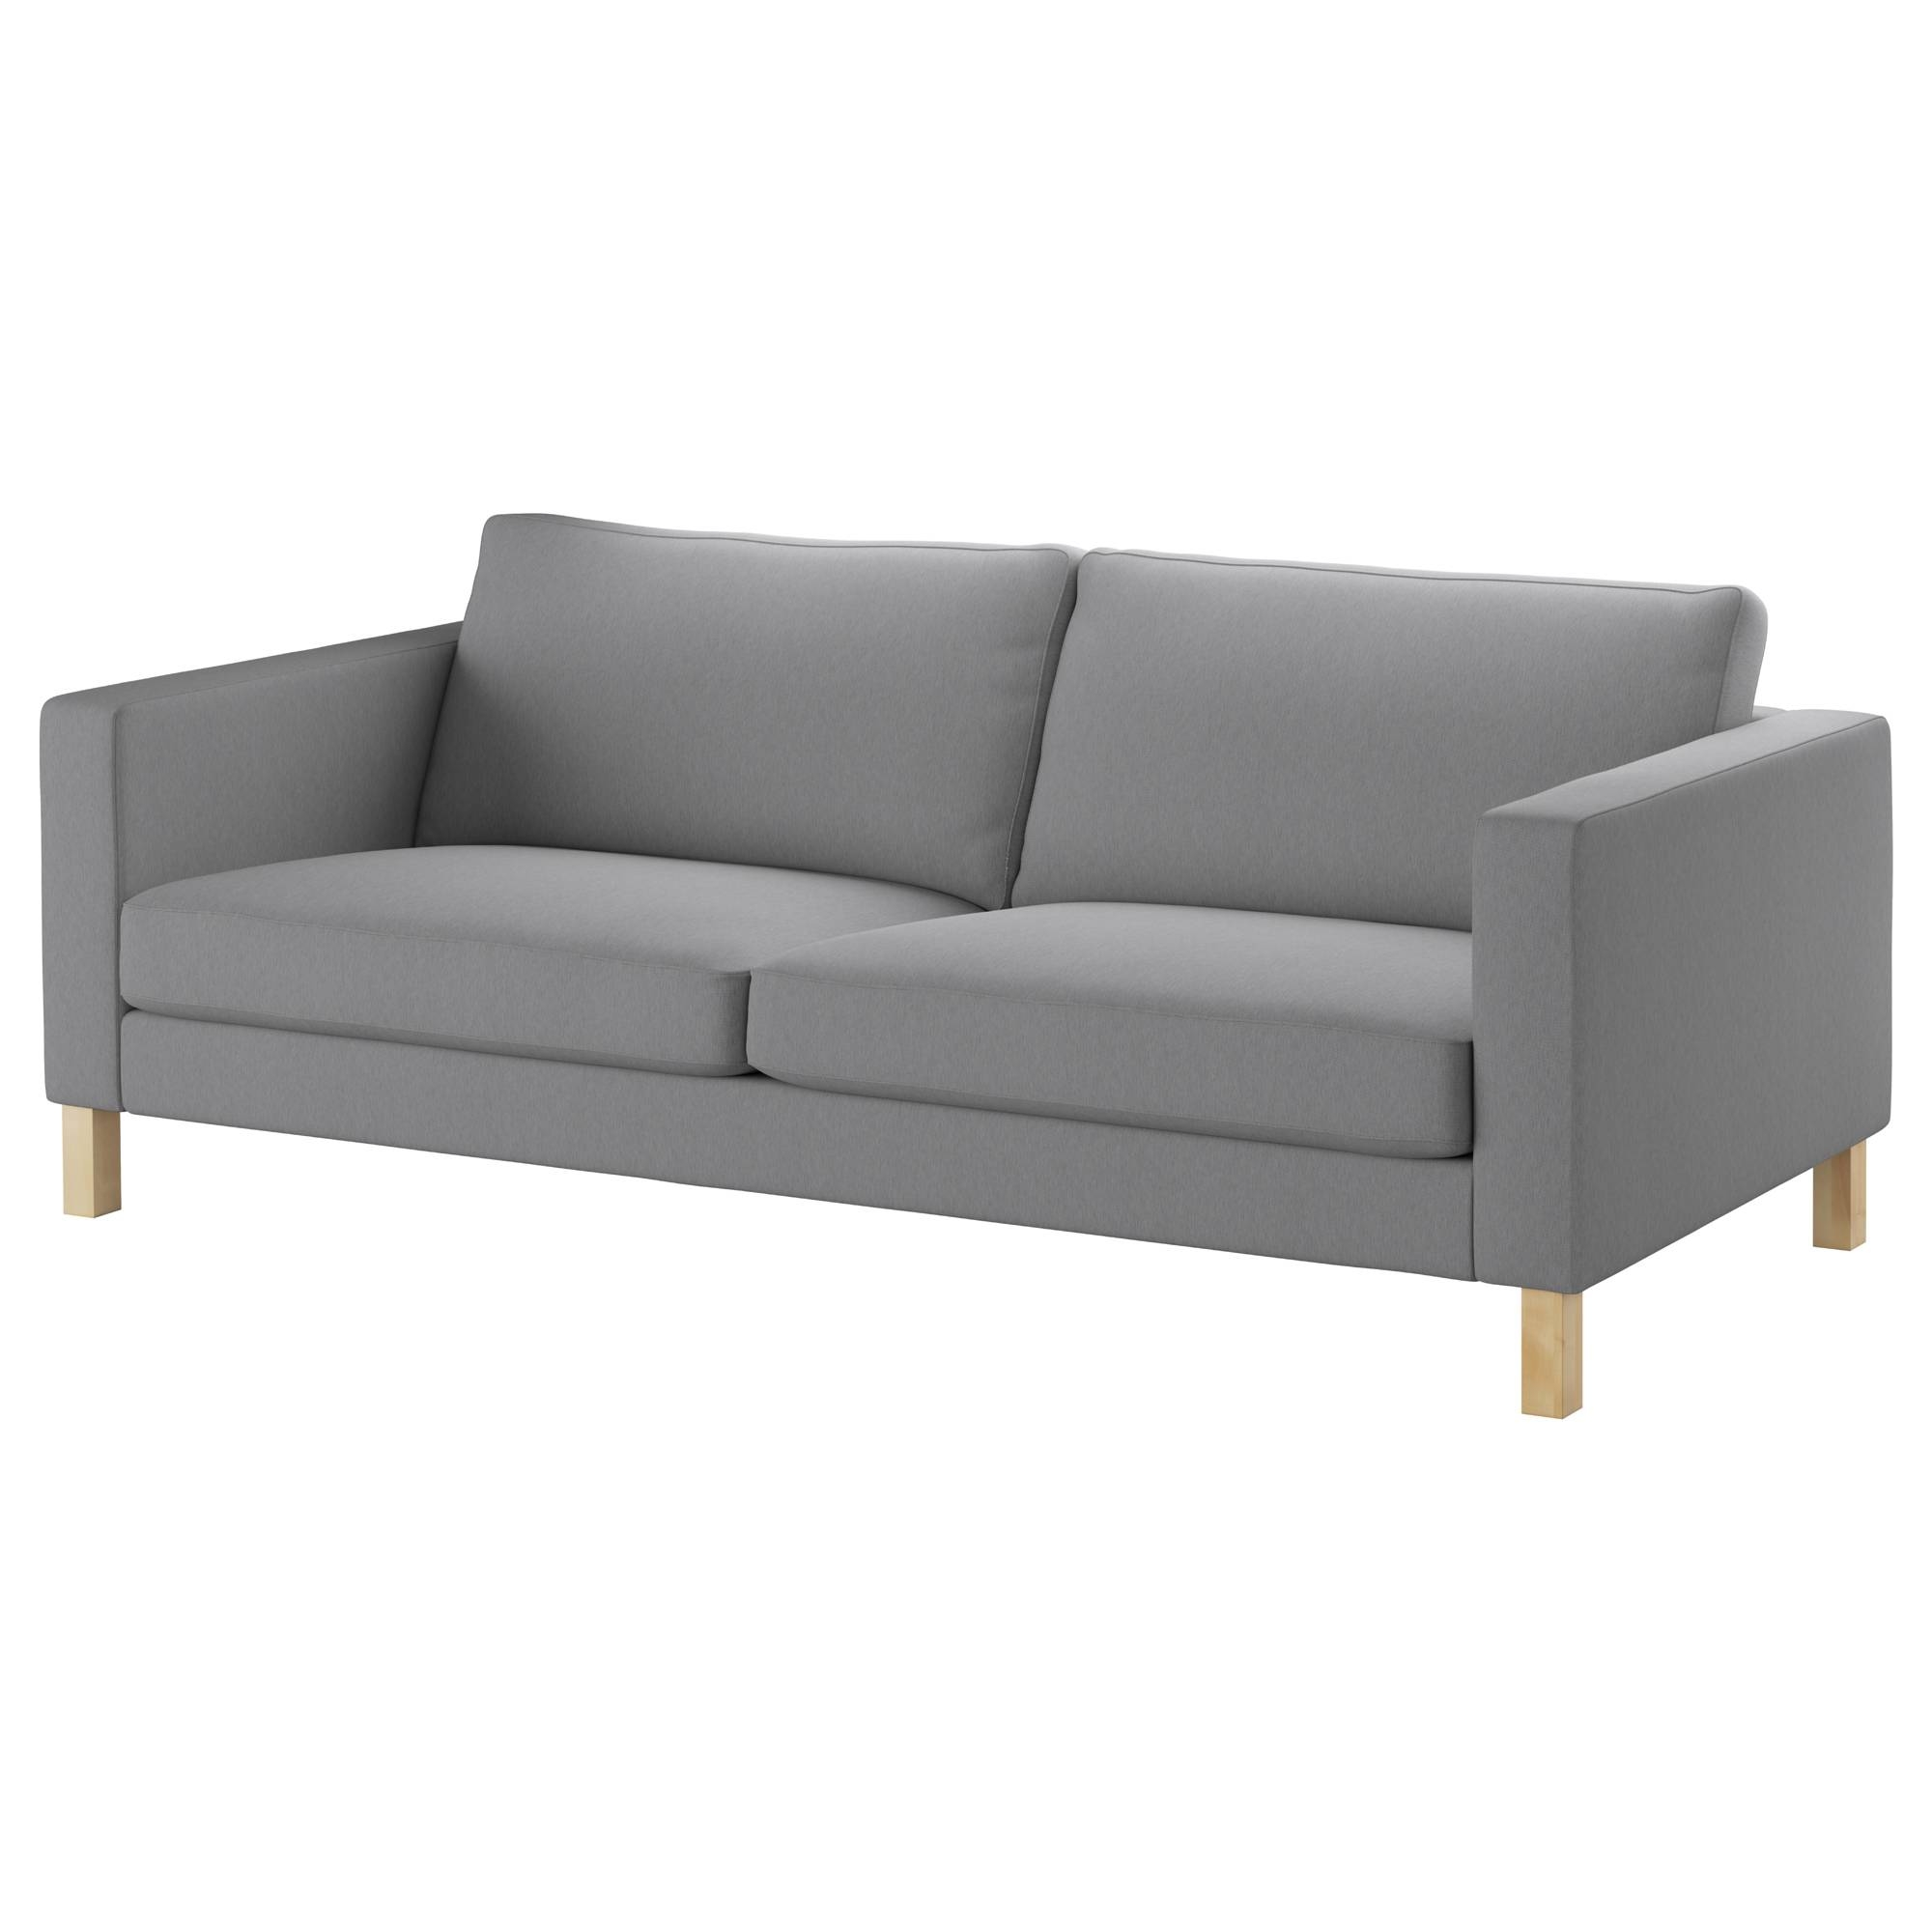 Karlstad Sofa Cover - Ikea with regard to Sofa With Washable Covers (Image 8 of 30)